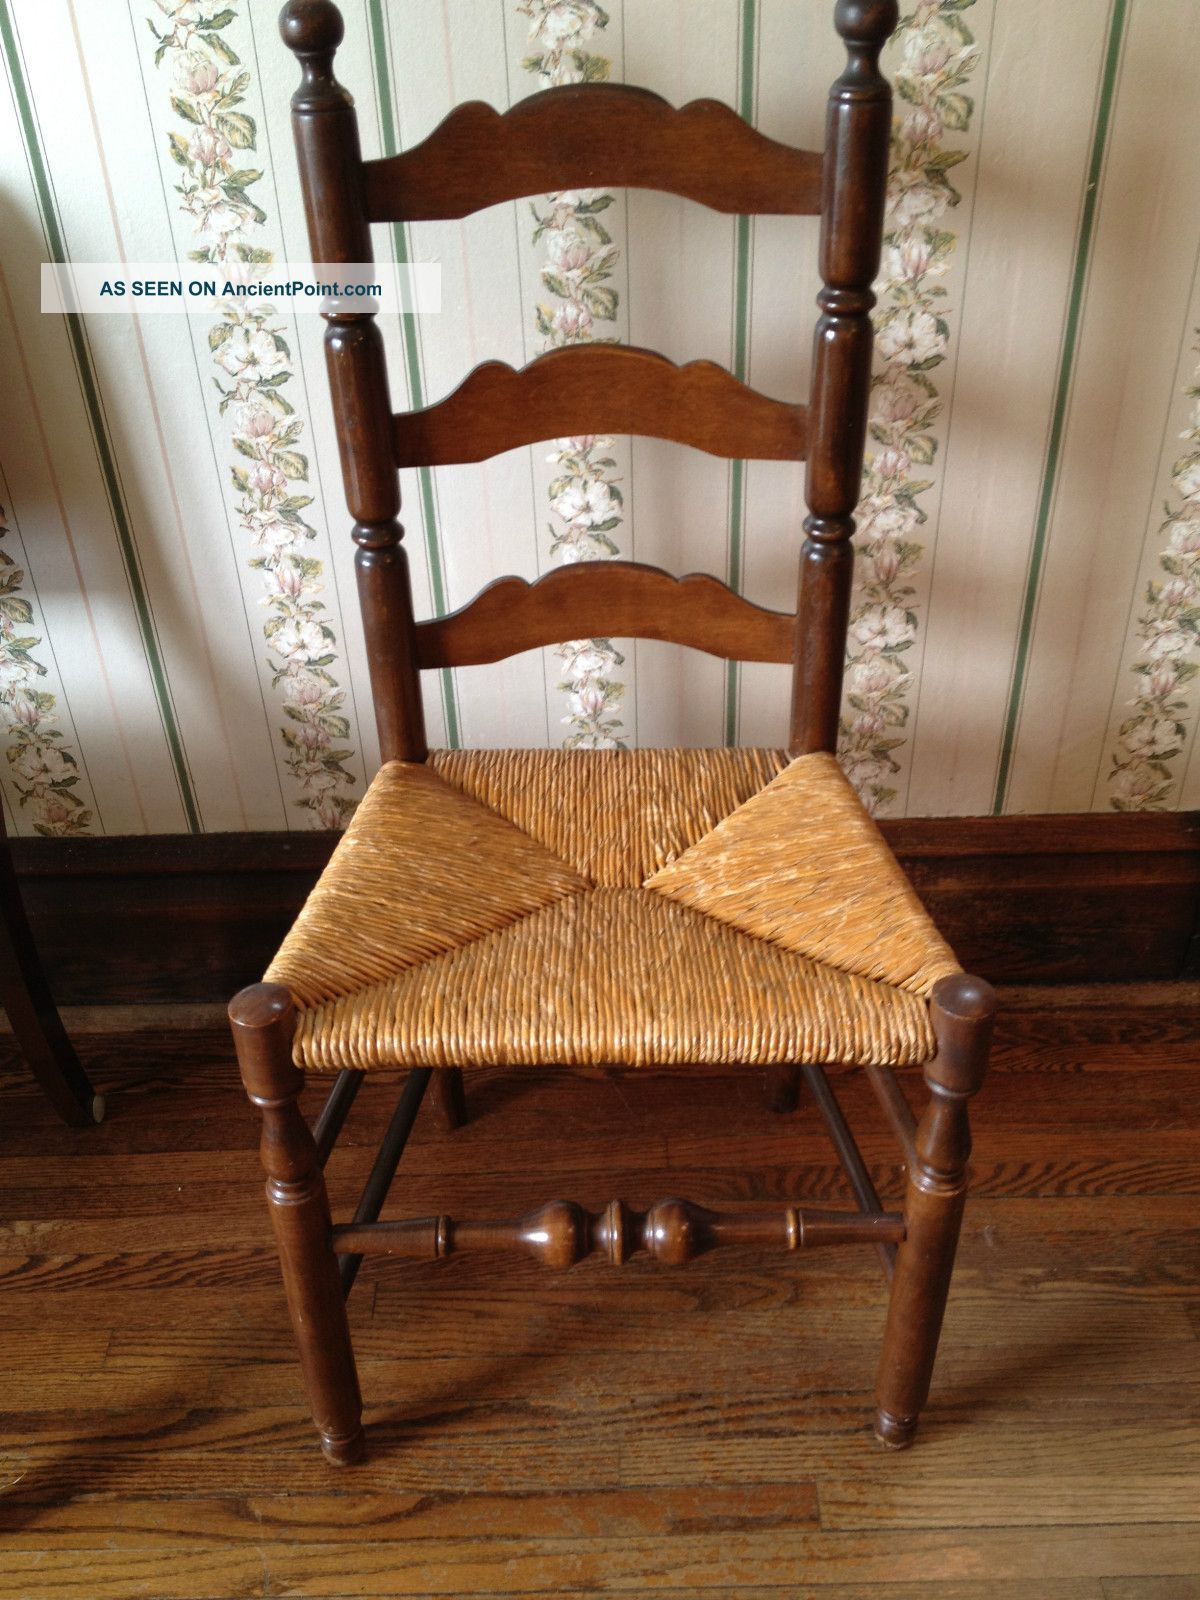 Lovely Antique Wood Chair With Cane Seat 1900 1950 Photo $30